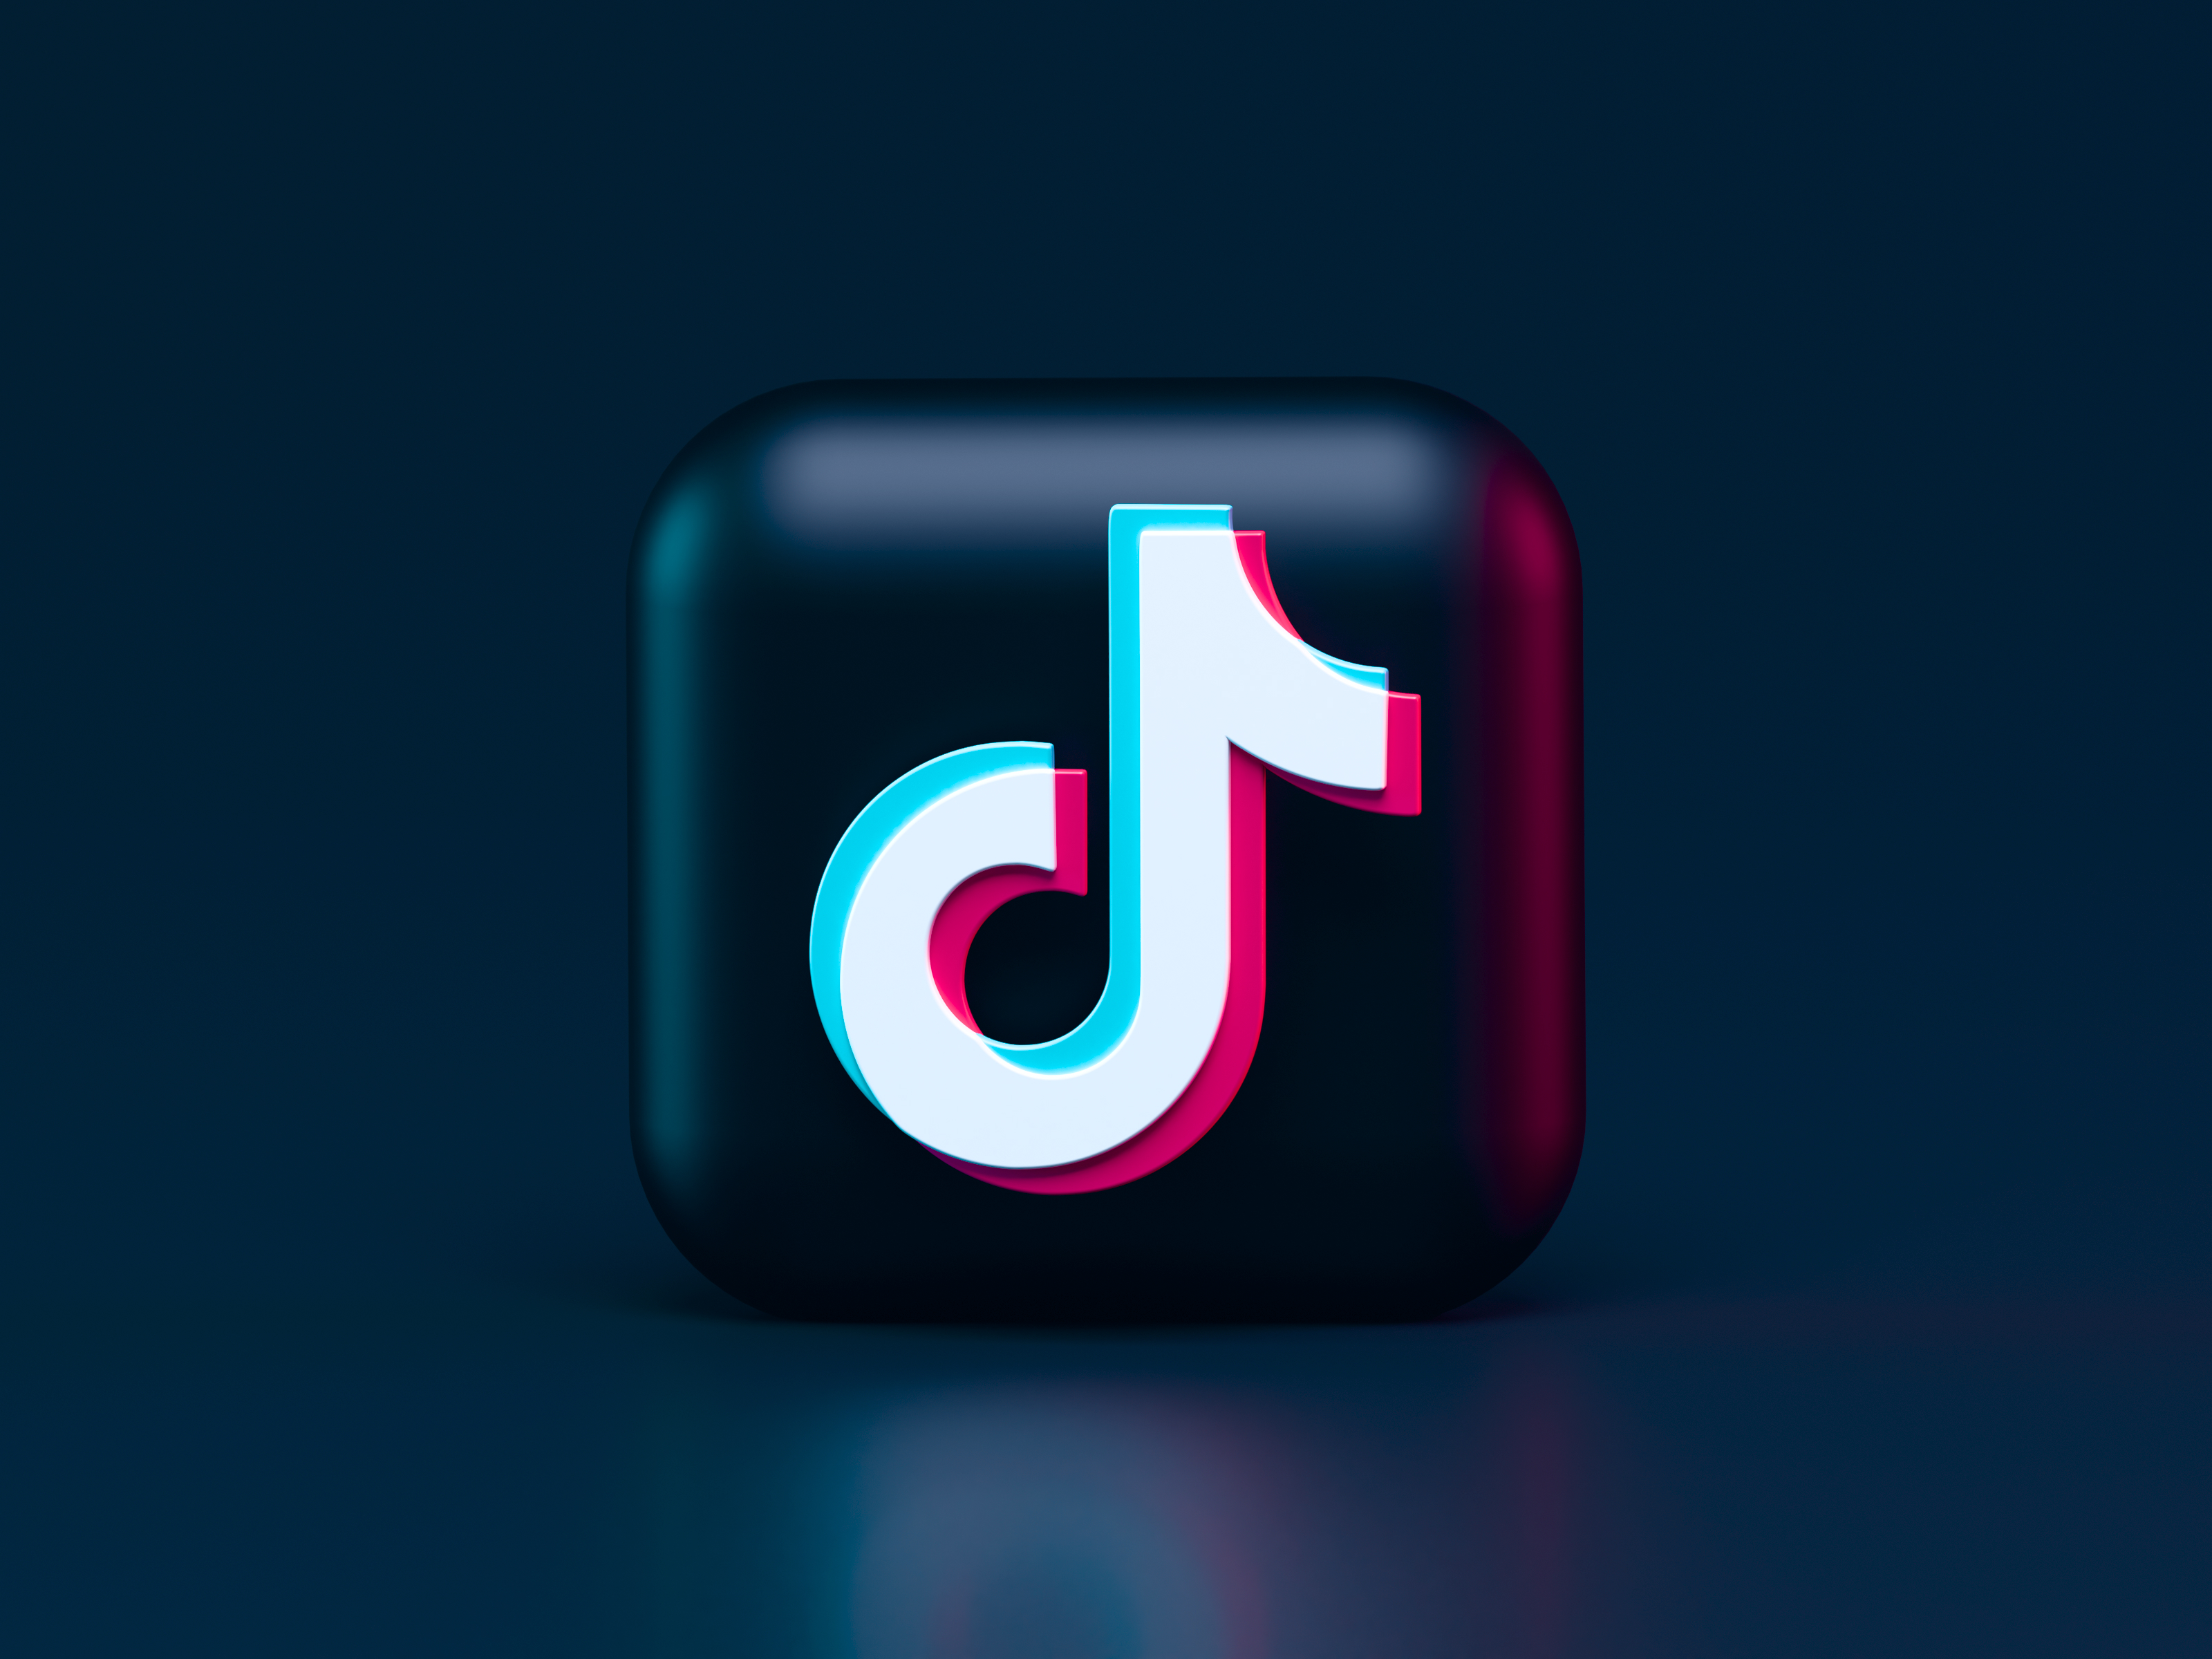 TikTok 3d Icon Concept. Dark Mode Style 🖤 Write me: alexanderbemore@gmail.com, if you need 3D visuals for your products. Made the 3d icon of video-sharing social networking service owned by ByteDance.